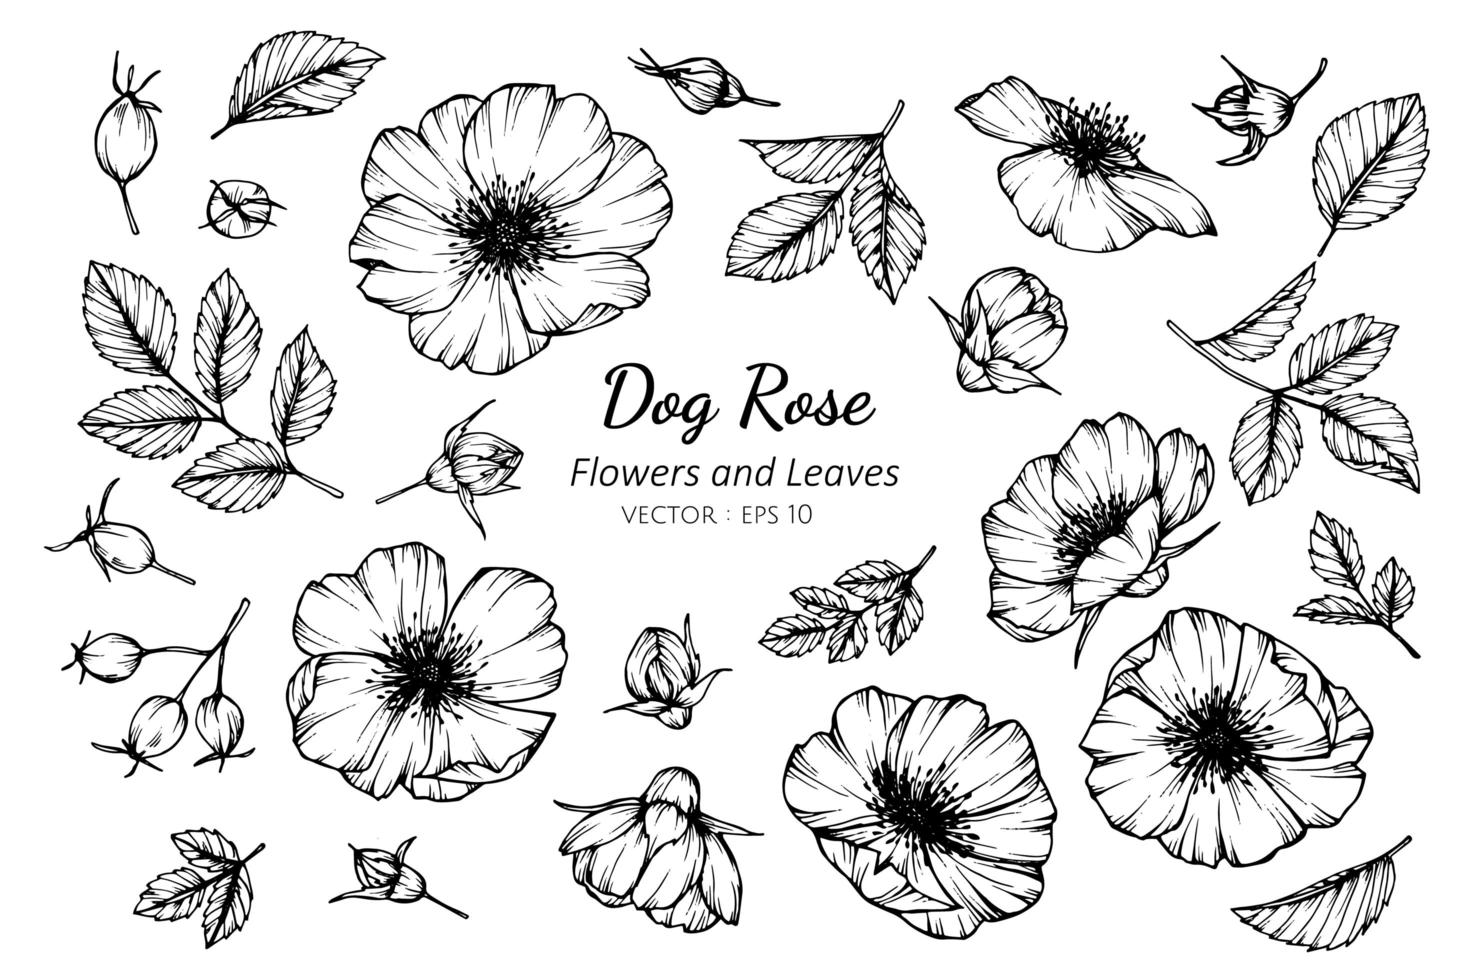 Collection of Dog Rose Flowers and Leaves vector